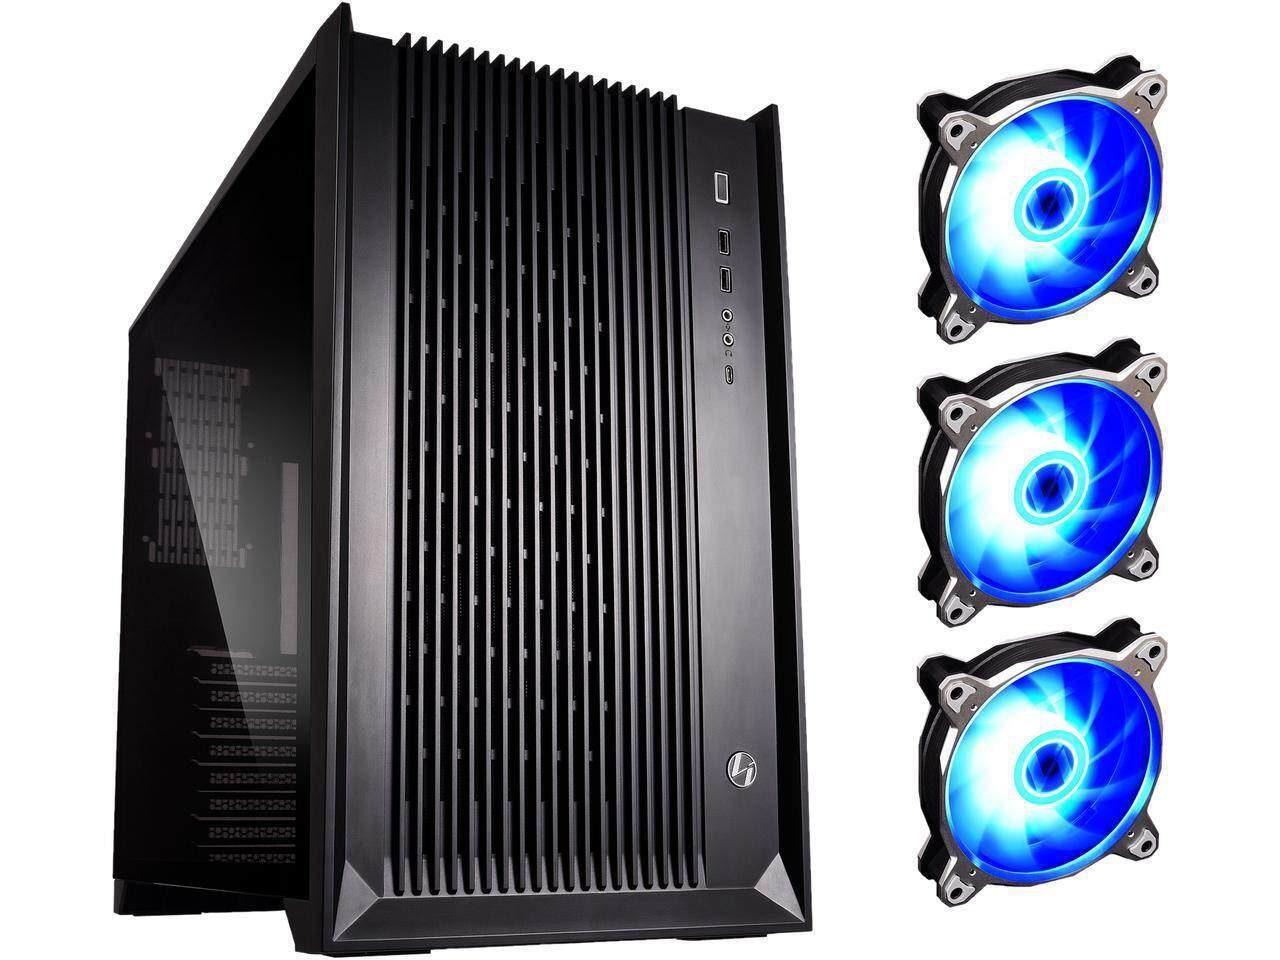 # LIAN LI PC-O11 AIR RGB Black SECC / Tempered Glass ATX Mid Tower Gaming Computer Case --Included 3 X RGB FANS , 2 X PWM FANS # Malaysia